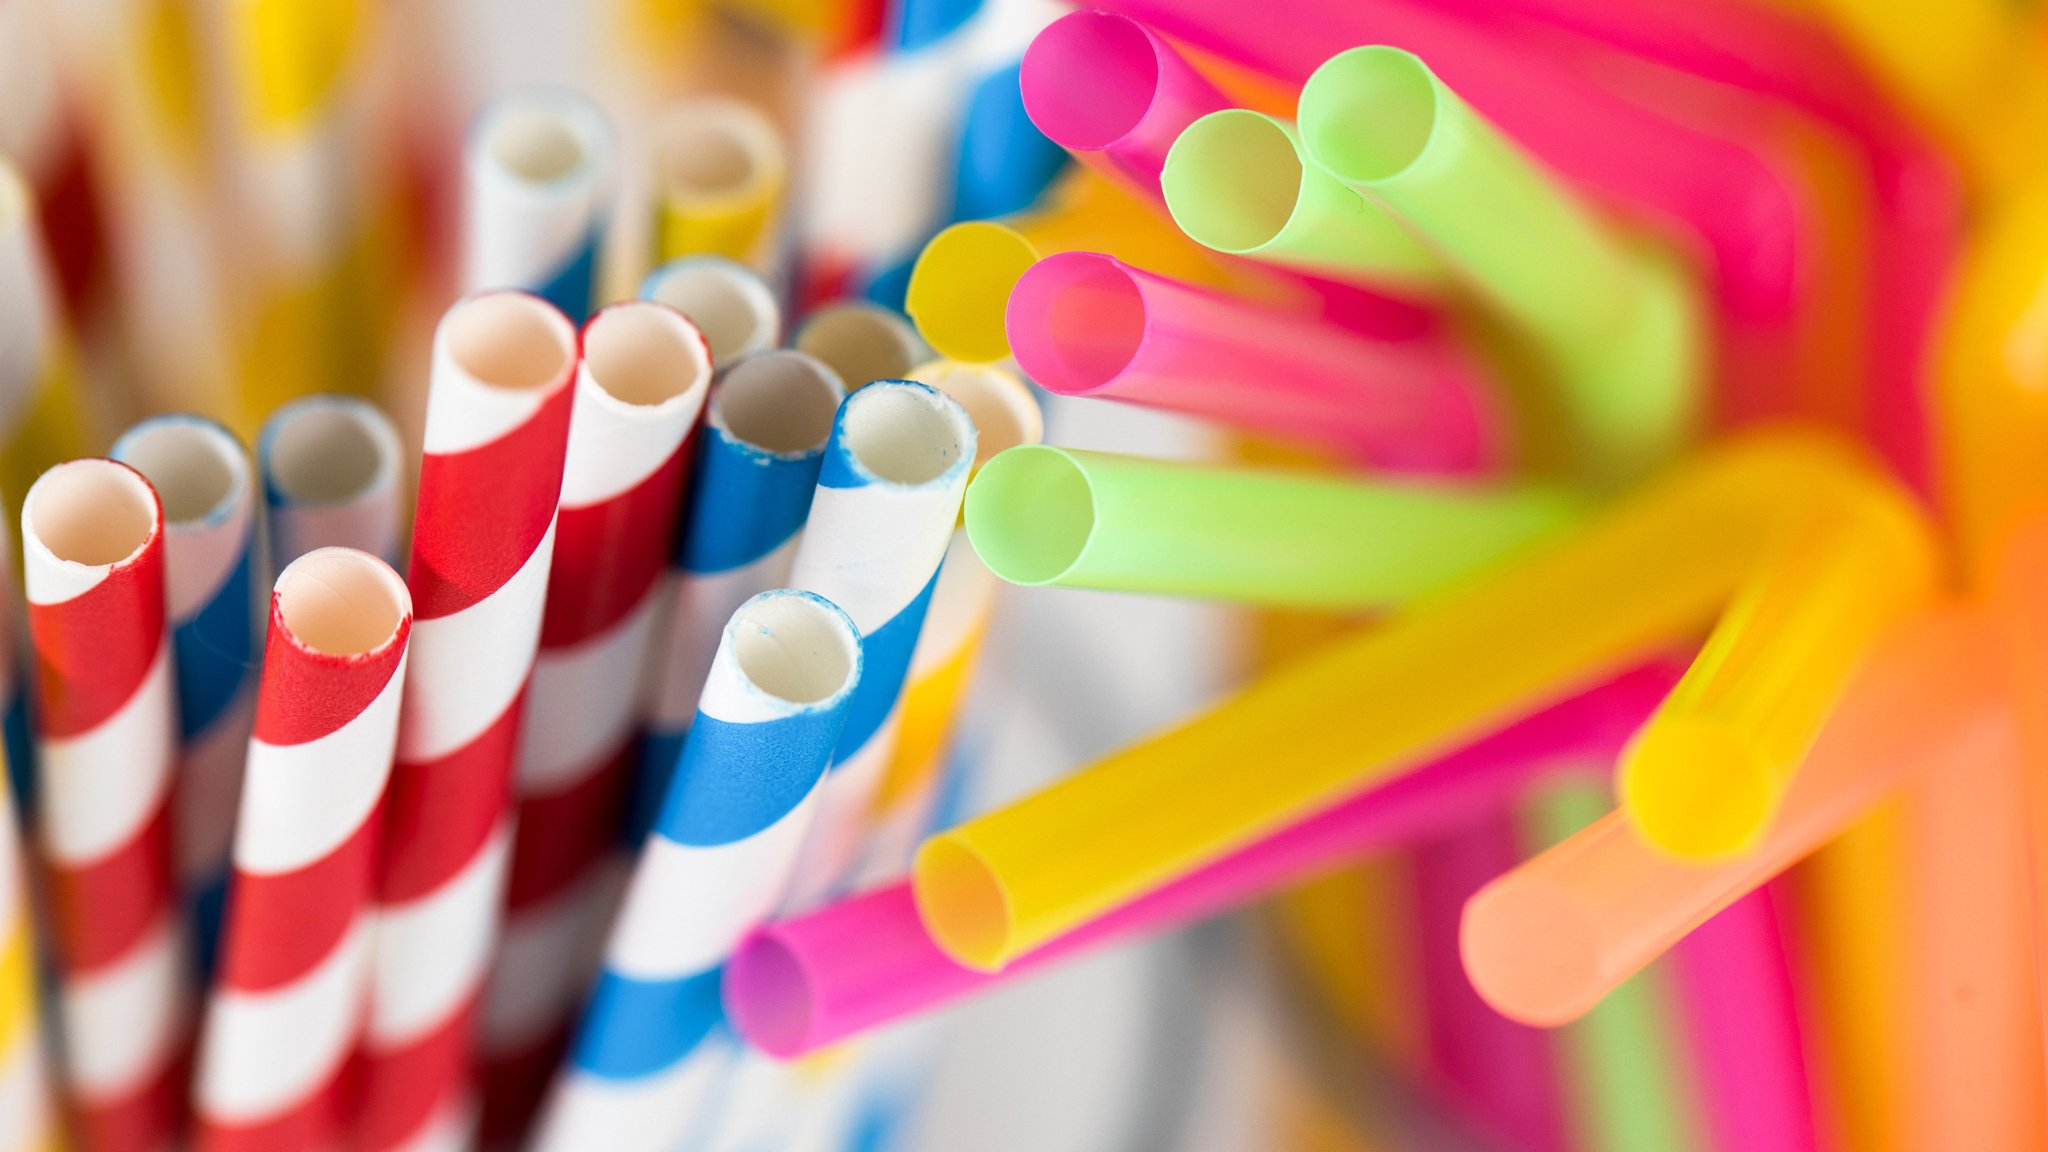 China's king of plastic straws creates new empire built on paper |  Financial Times